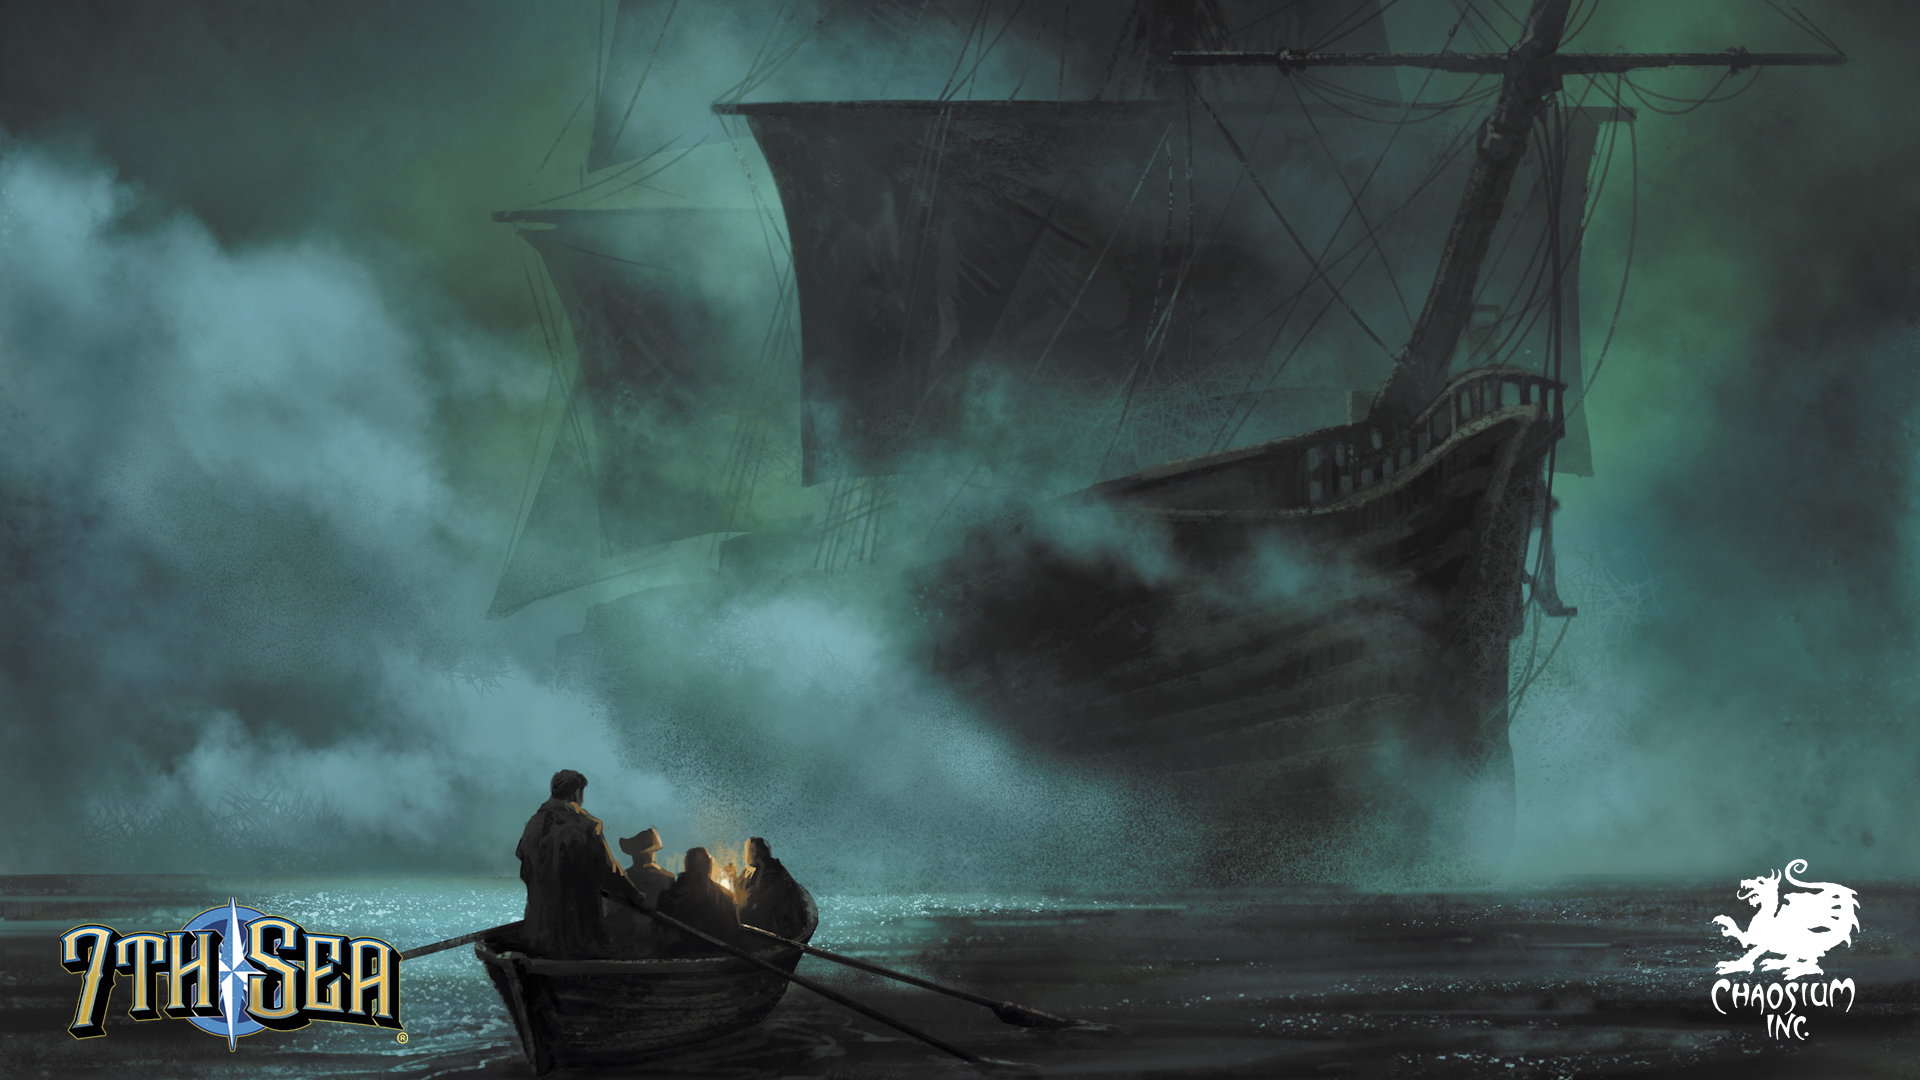 7th Sea Background - Nighttime Row